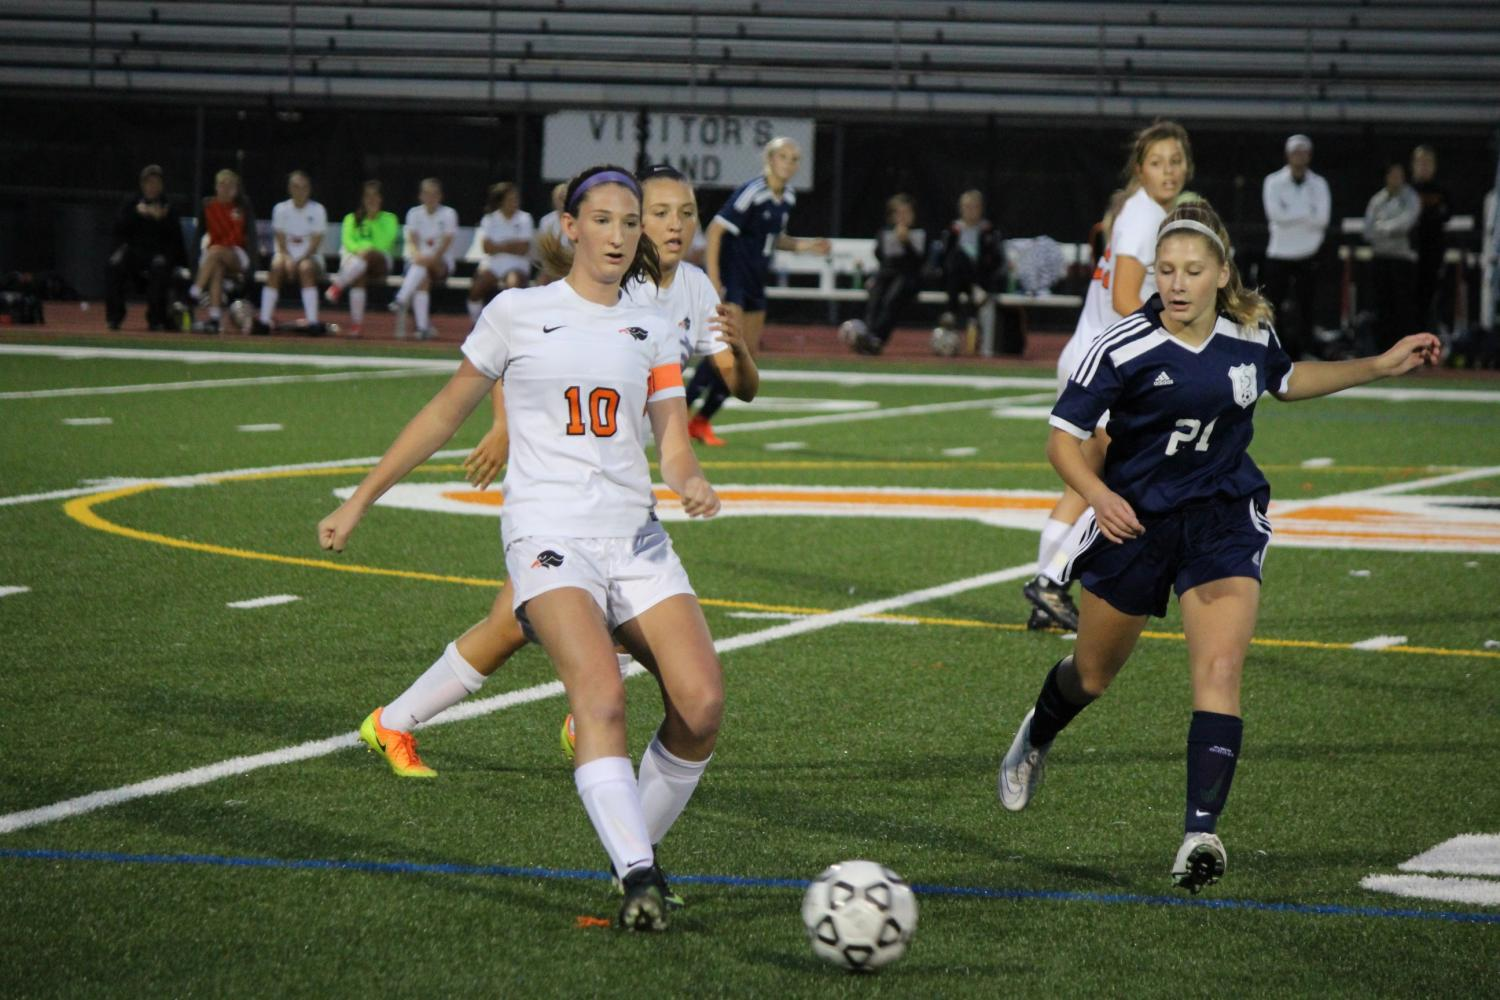 Senior defender/midfielder Kelsey Thompson executes a play against Norwin on Wednesday, Sept. 6.